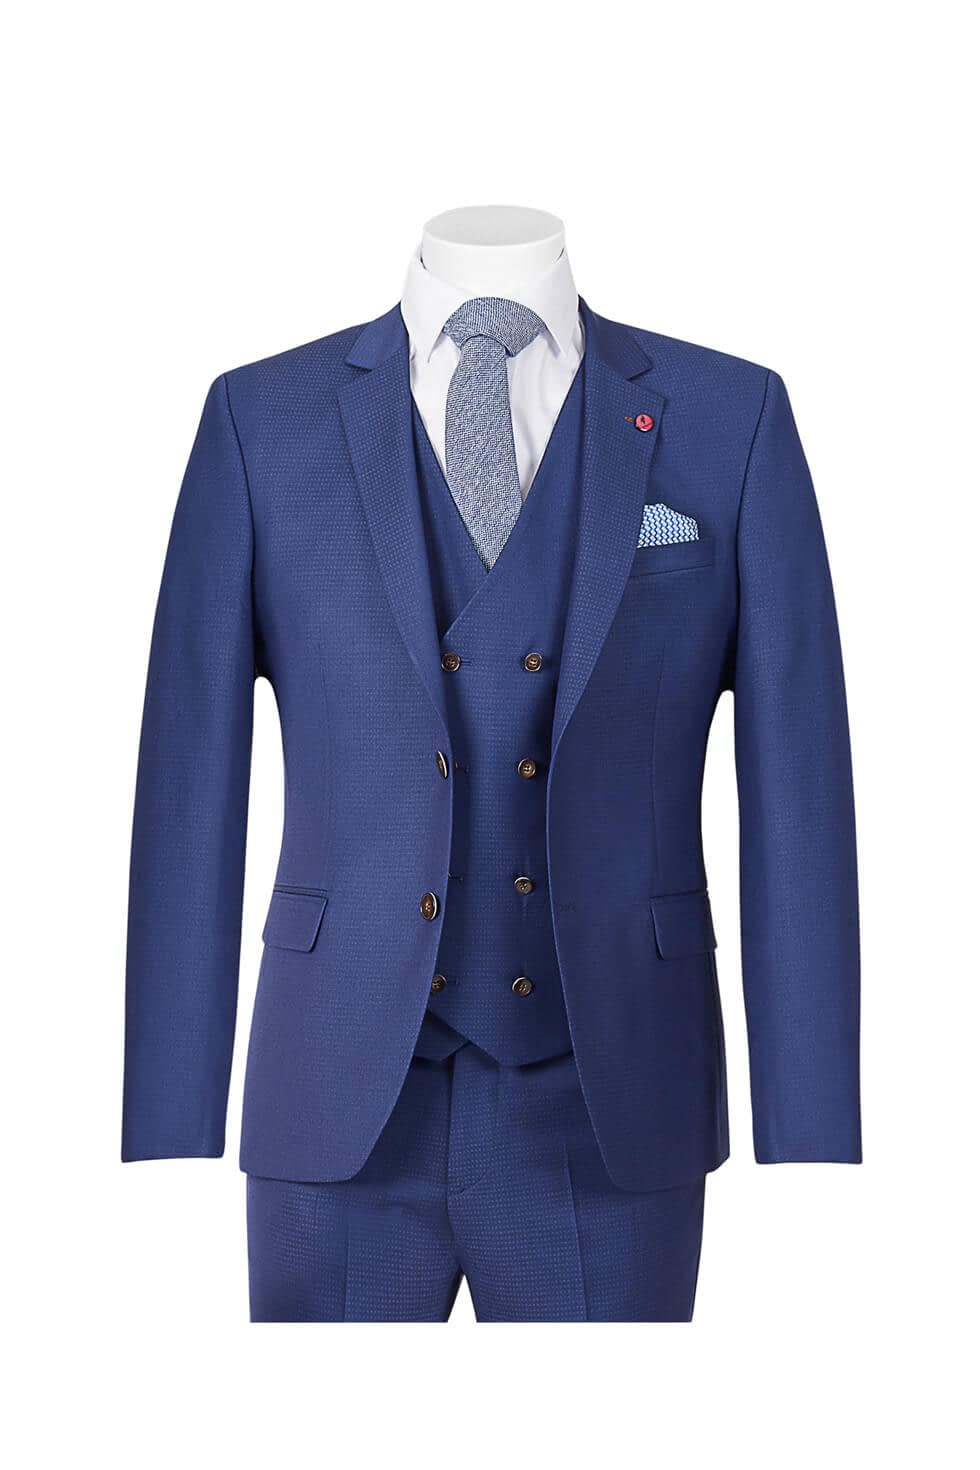 Ed Oliver Three Piece Navy Suit